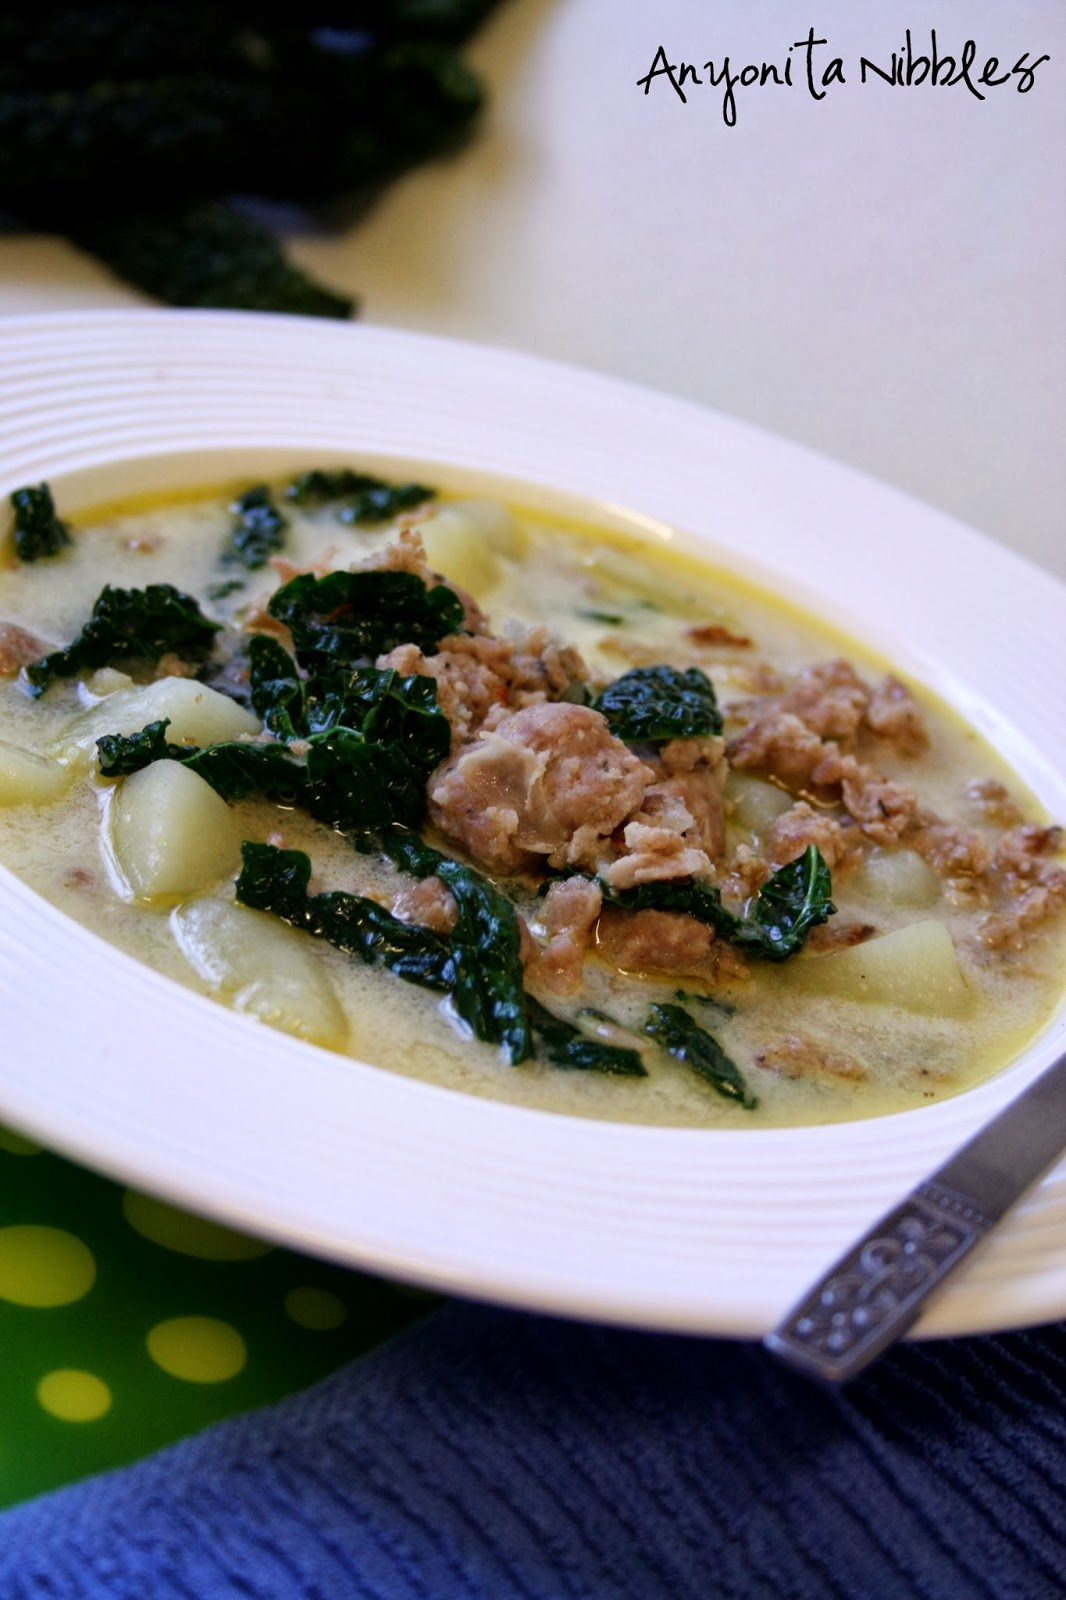 This Zuppa Toscana tastes just like what you get from Olive Garden! Delicious & a must pin!